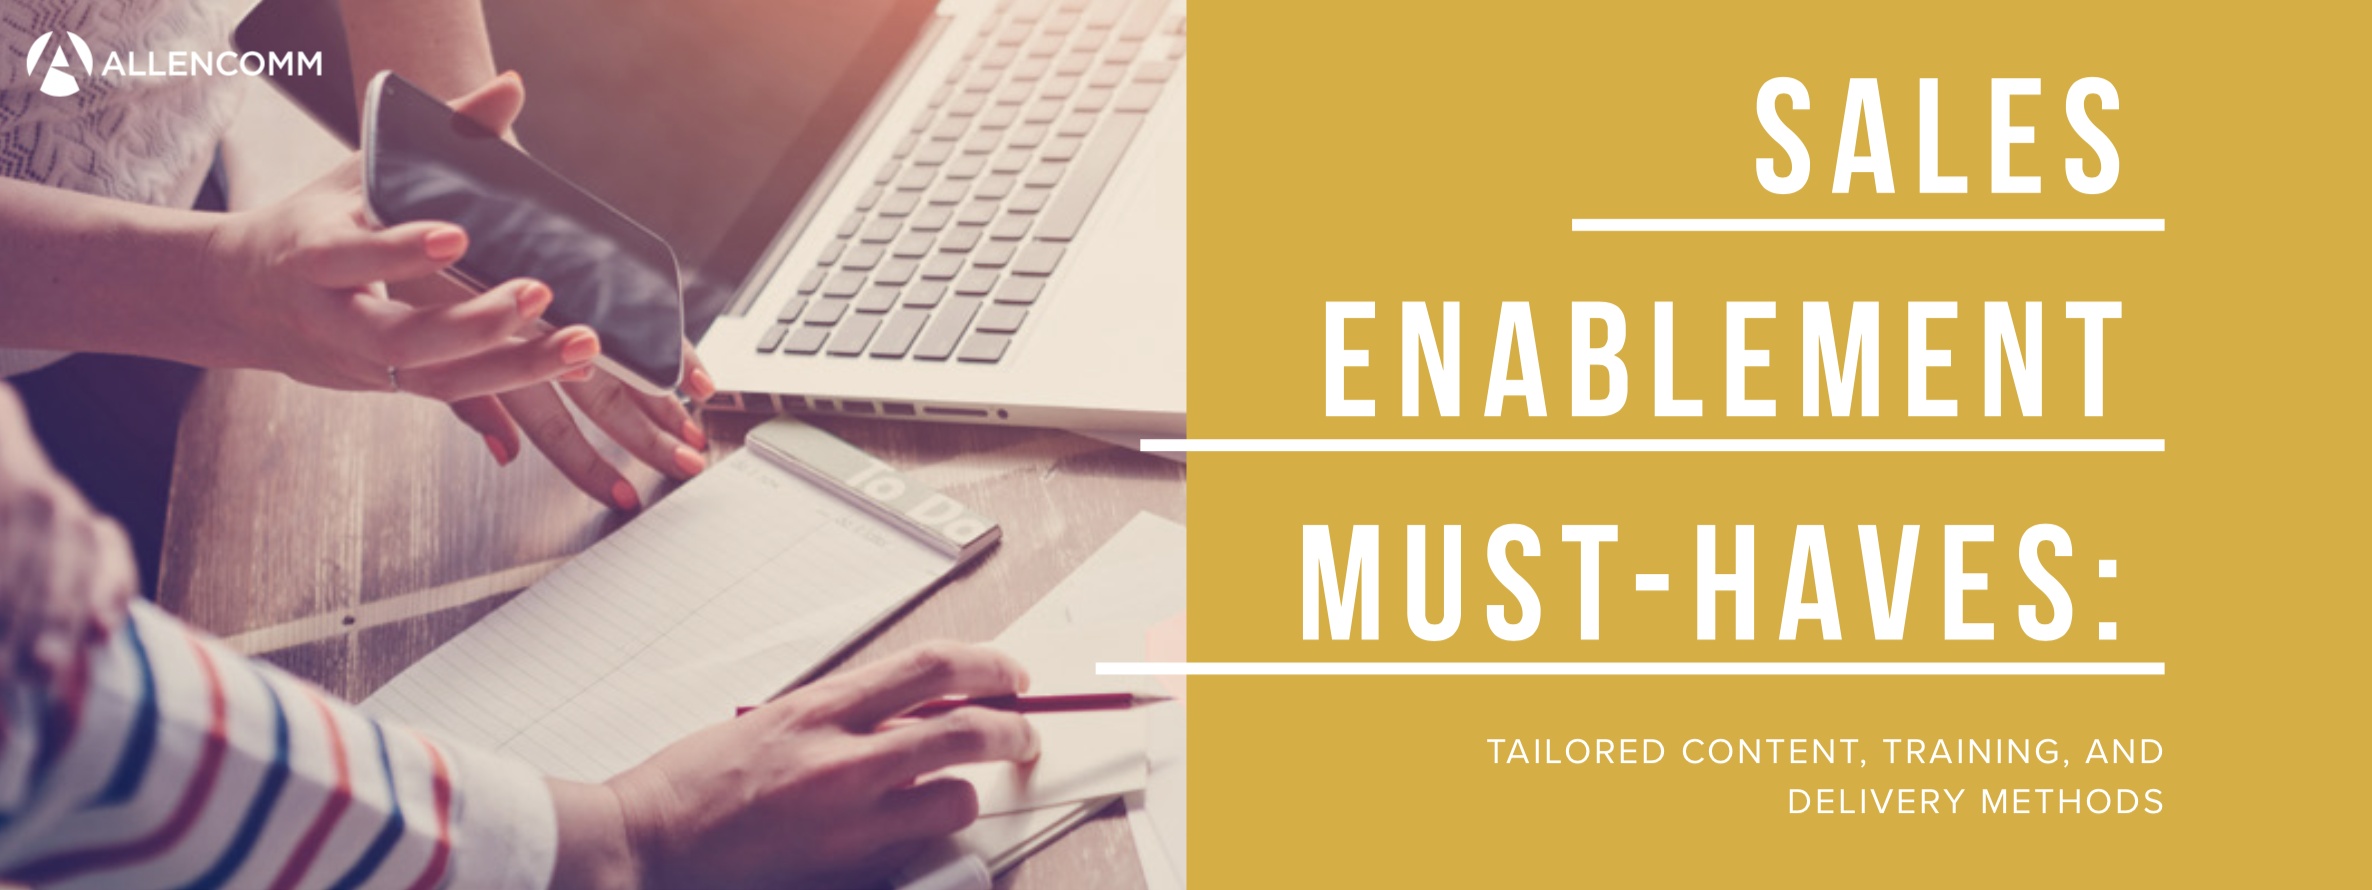 Sales Enablement Must Haves